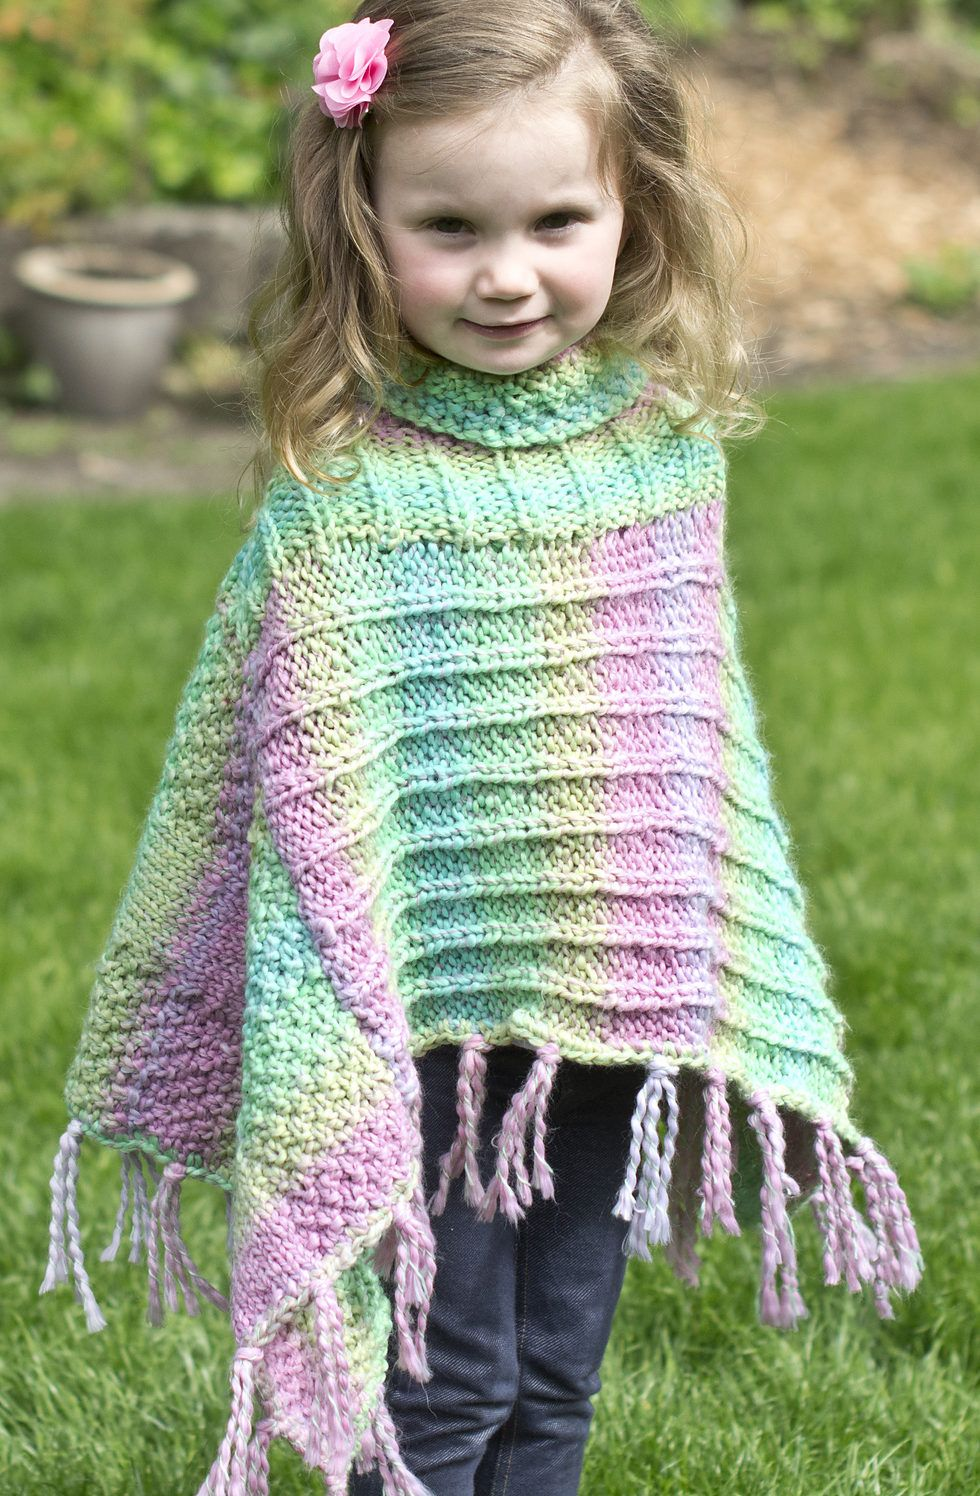 Free Knitting Pattern for Fun Times Poncho - Poncho is made in two ...